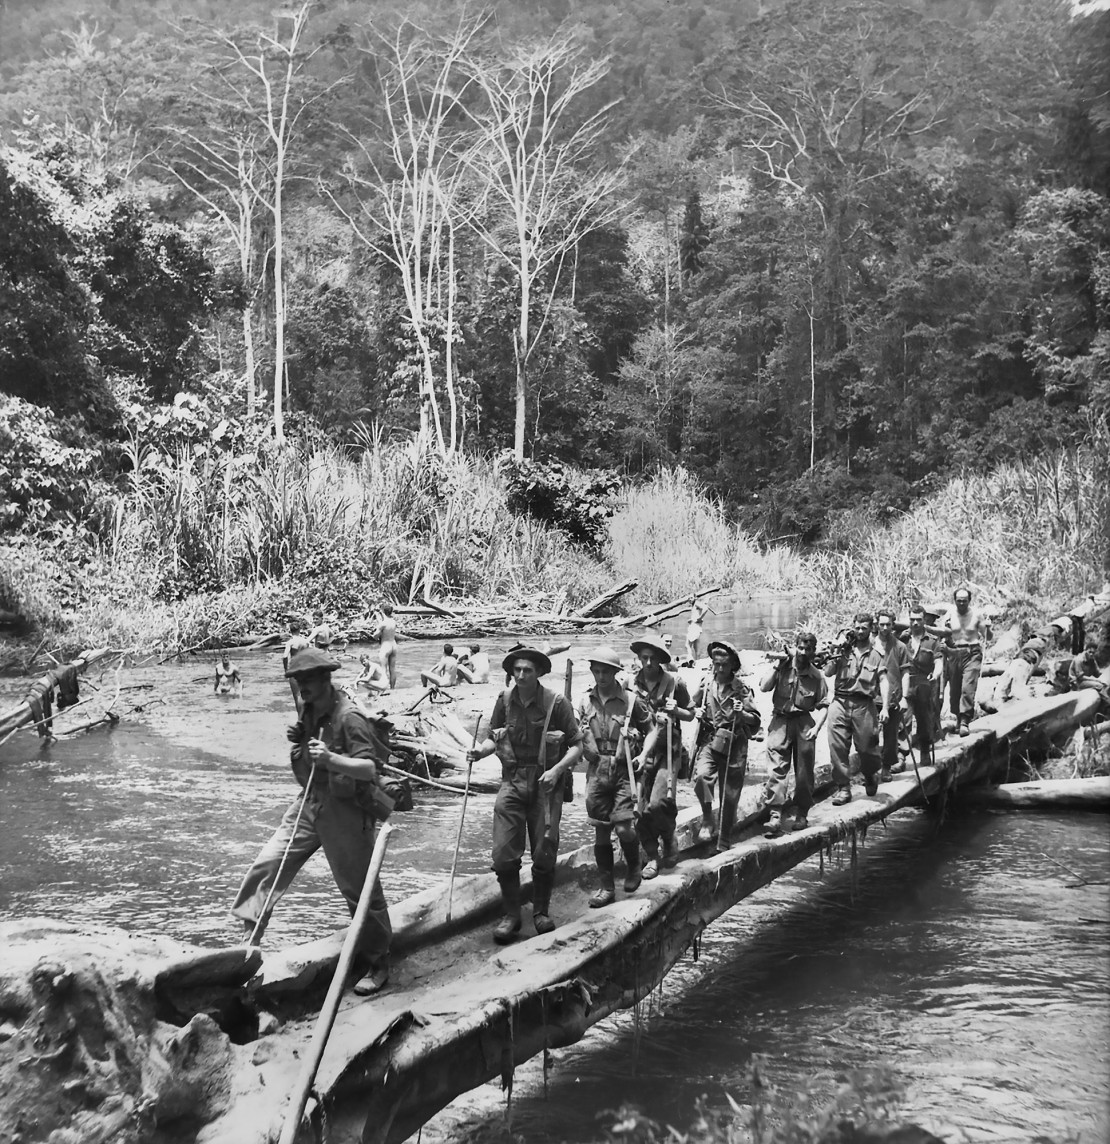 A group of troops crossing a river